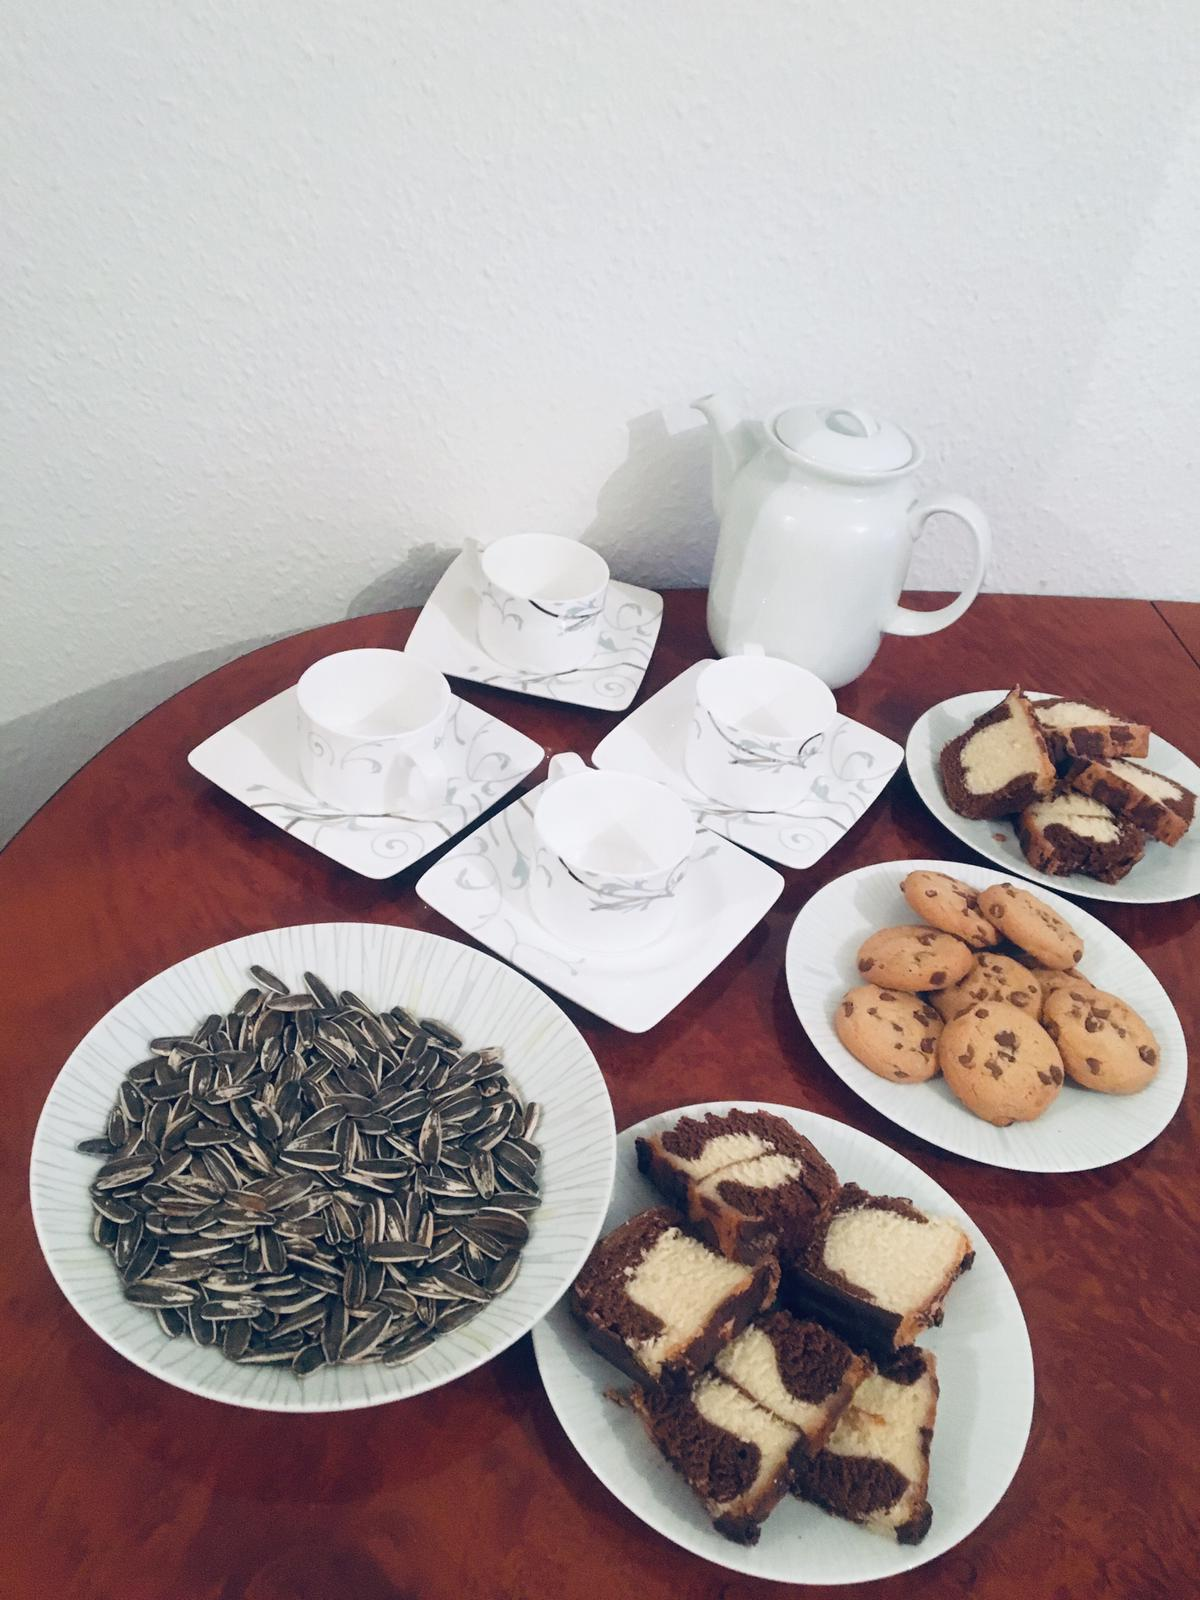 Our gracious hostess brewed Arabic-style tea, served sweet cake and cookies and salty sunflower seeds.